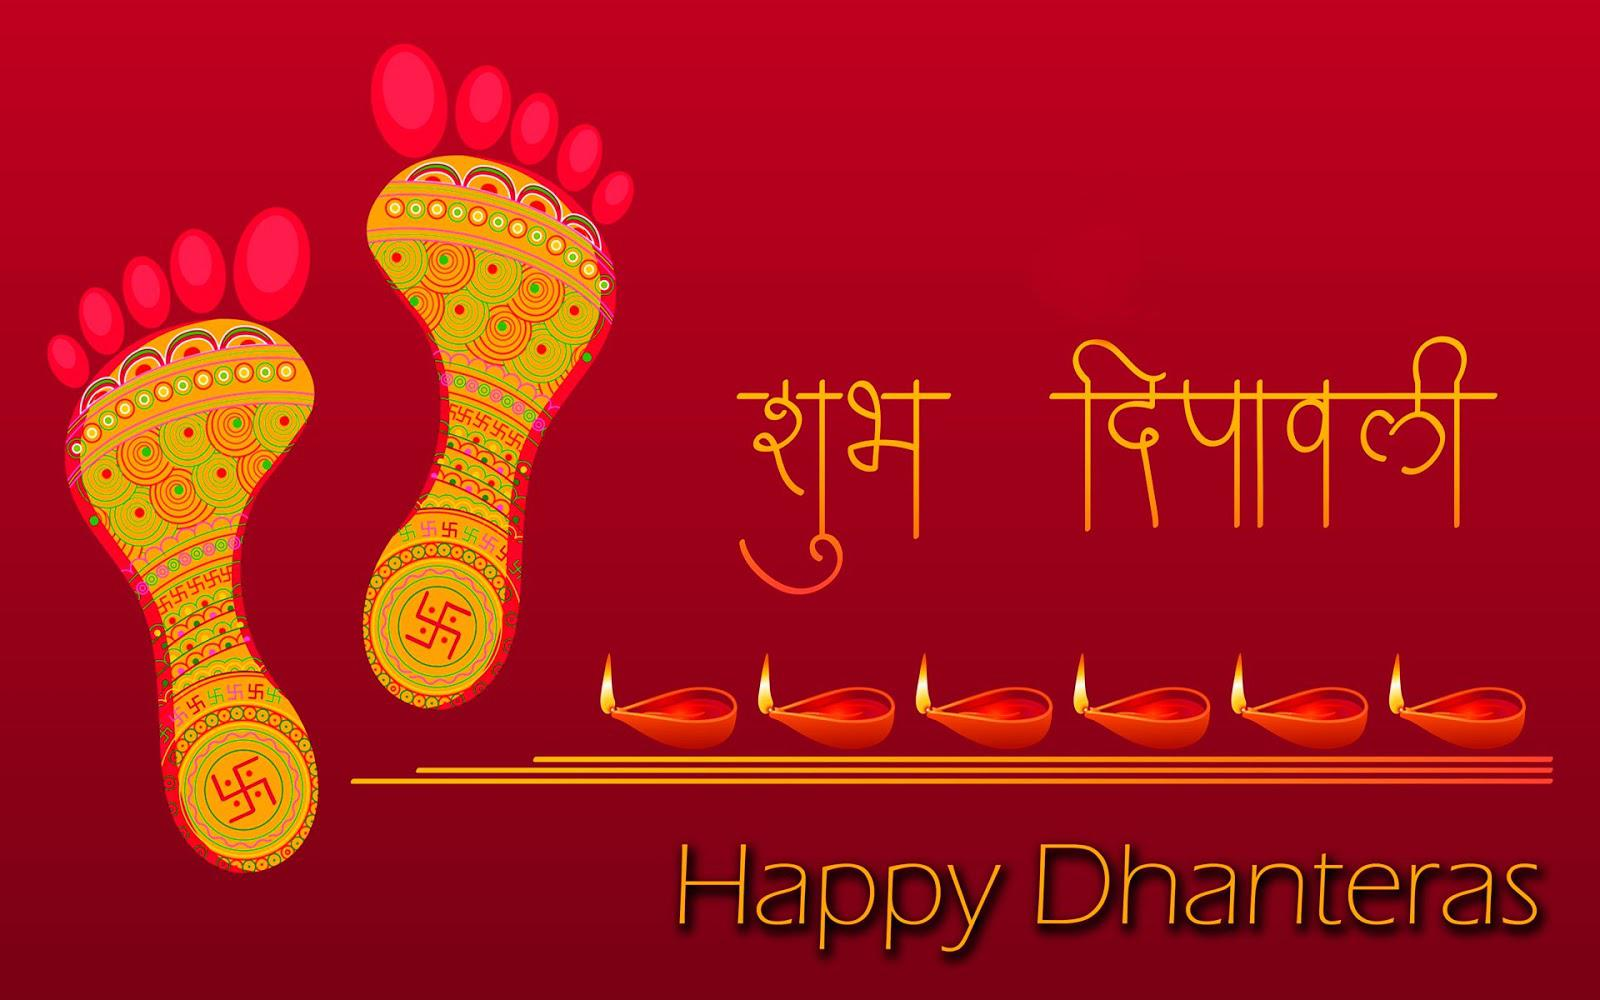 Free Download Diwali Wallpapers and Images Deepawali